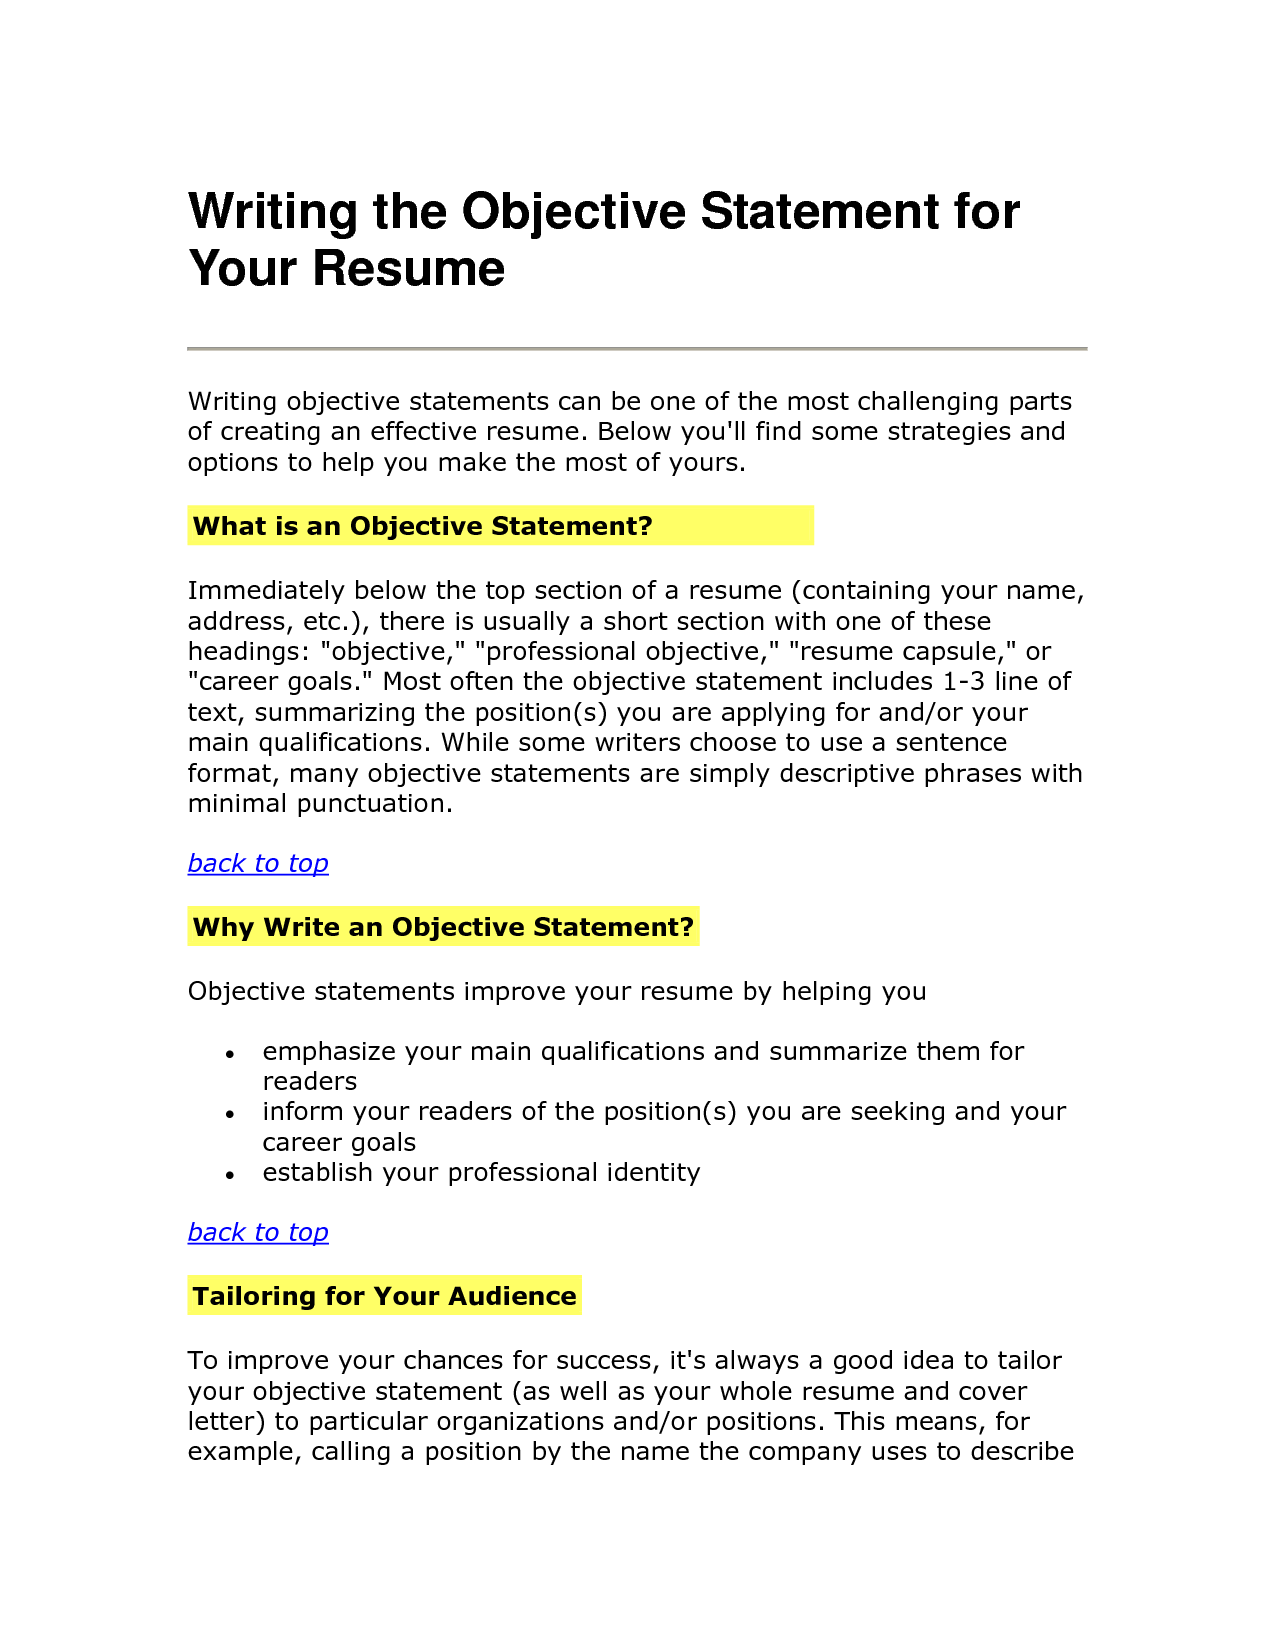 Best Objective Statements For Resumes Resume Objective Statement